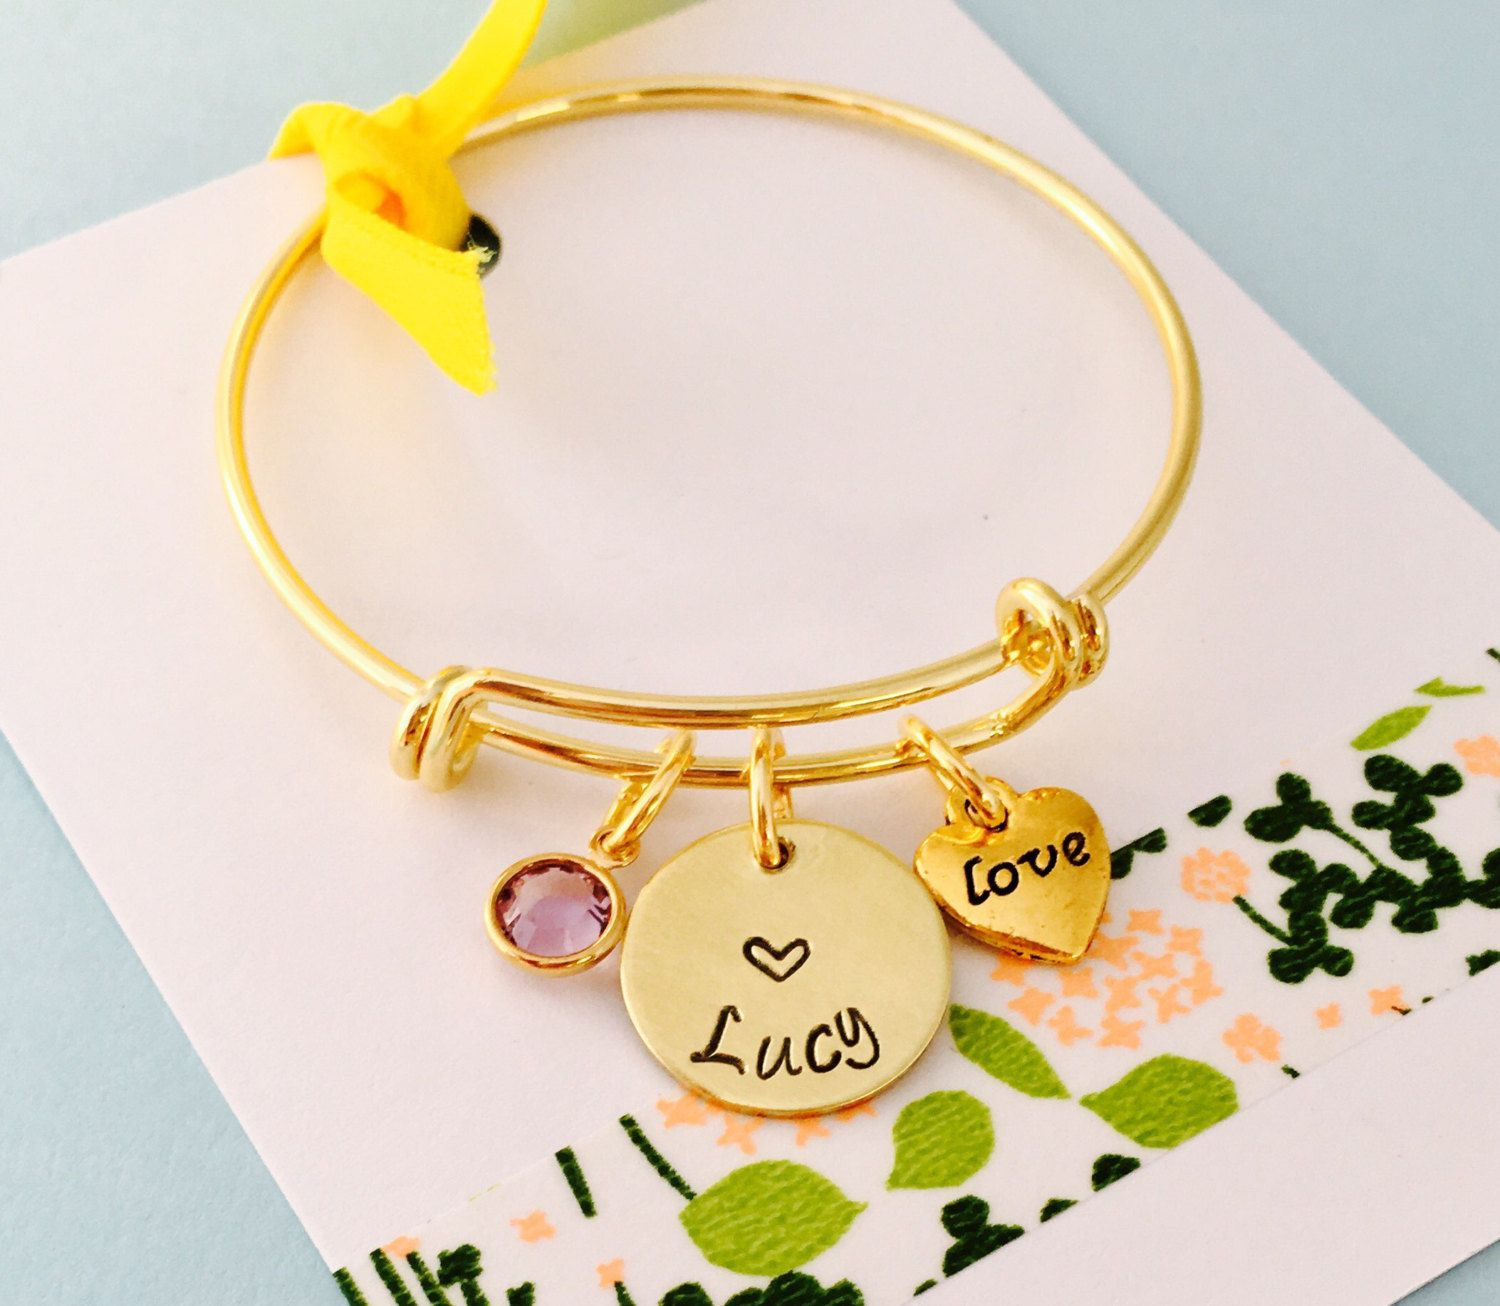 engraved girls best bracelet girl gold lucky dp com gift snowflake amazon bangle charm cool bracelets jewelry era bangles